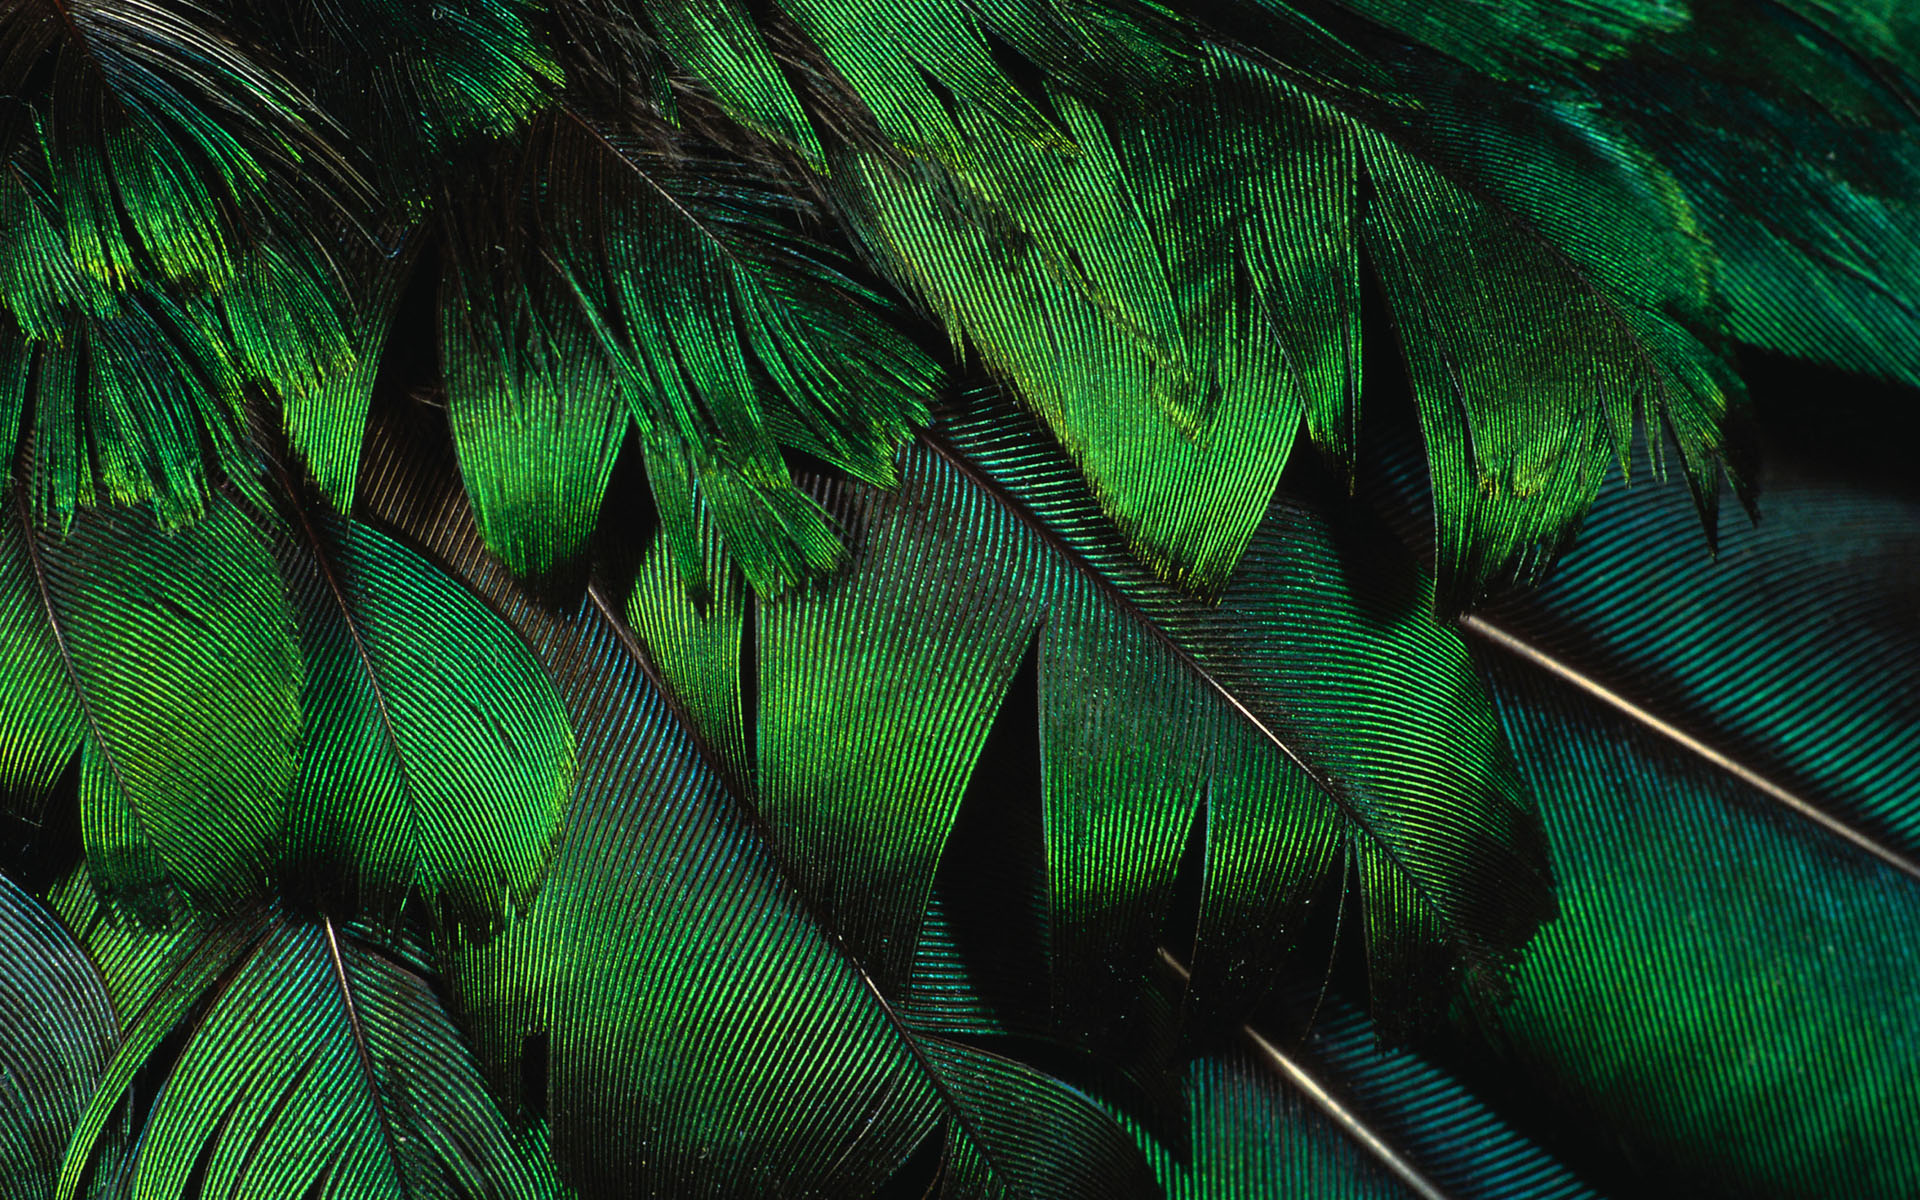 wallpaper feather download - photo #21